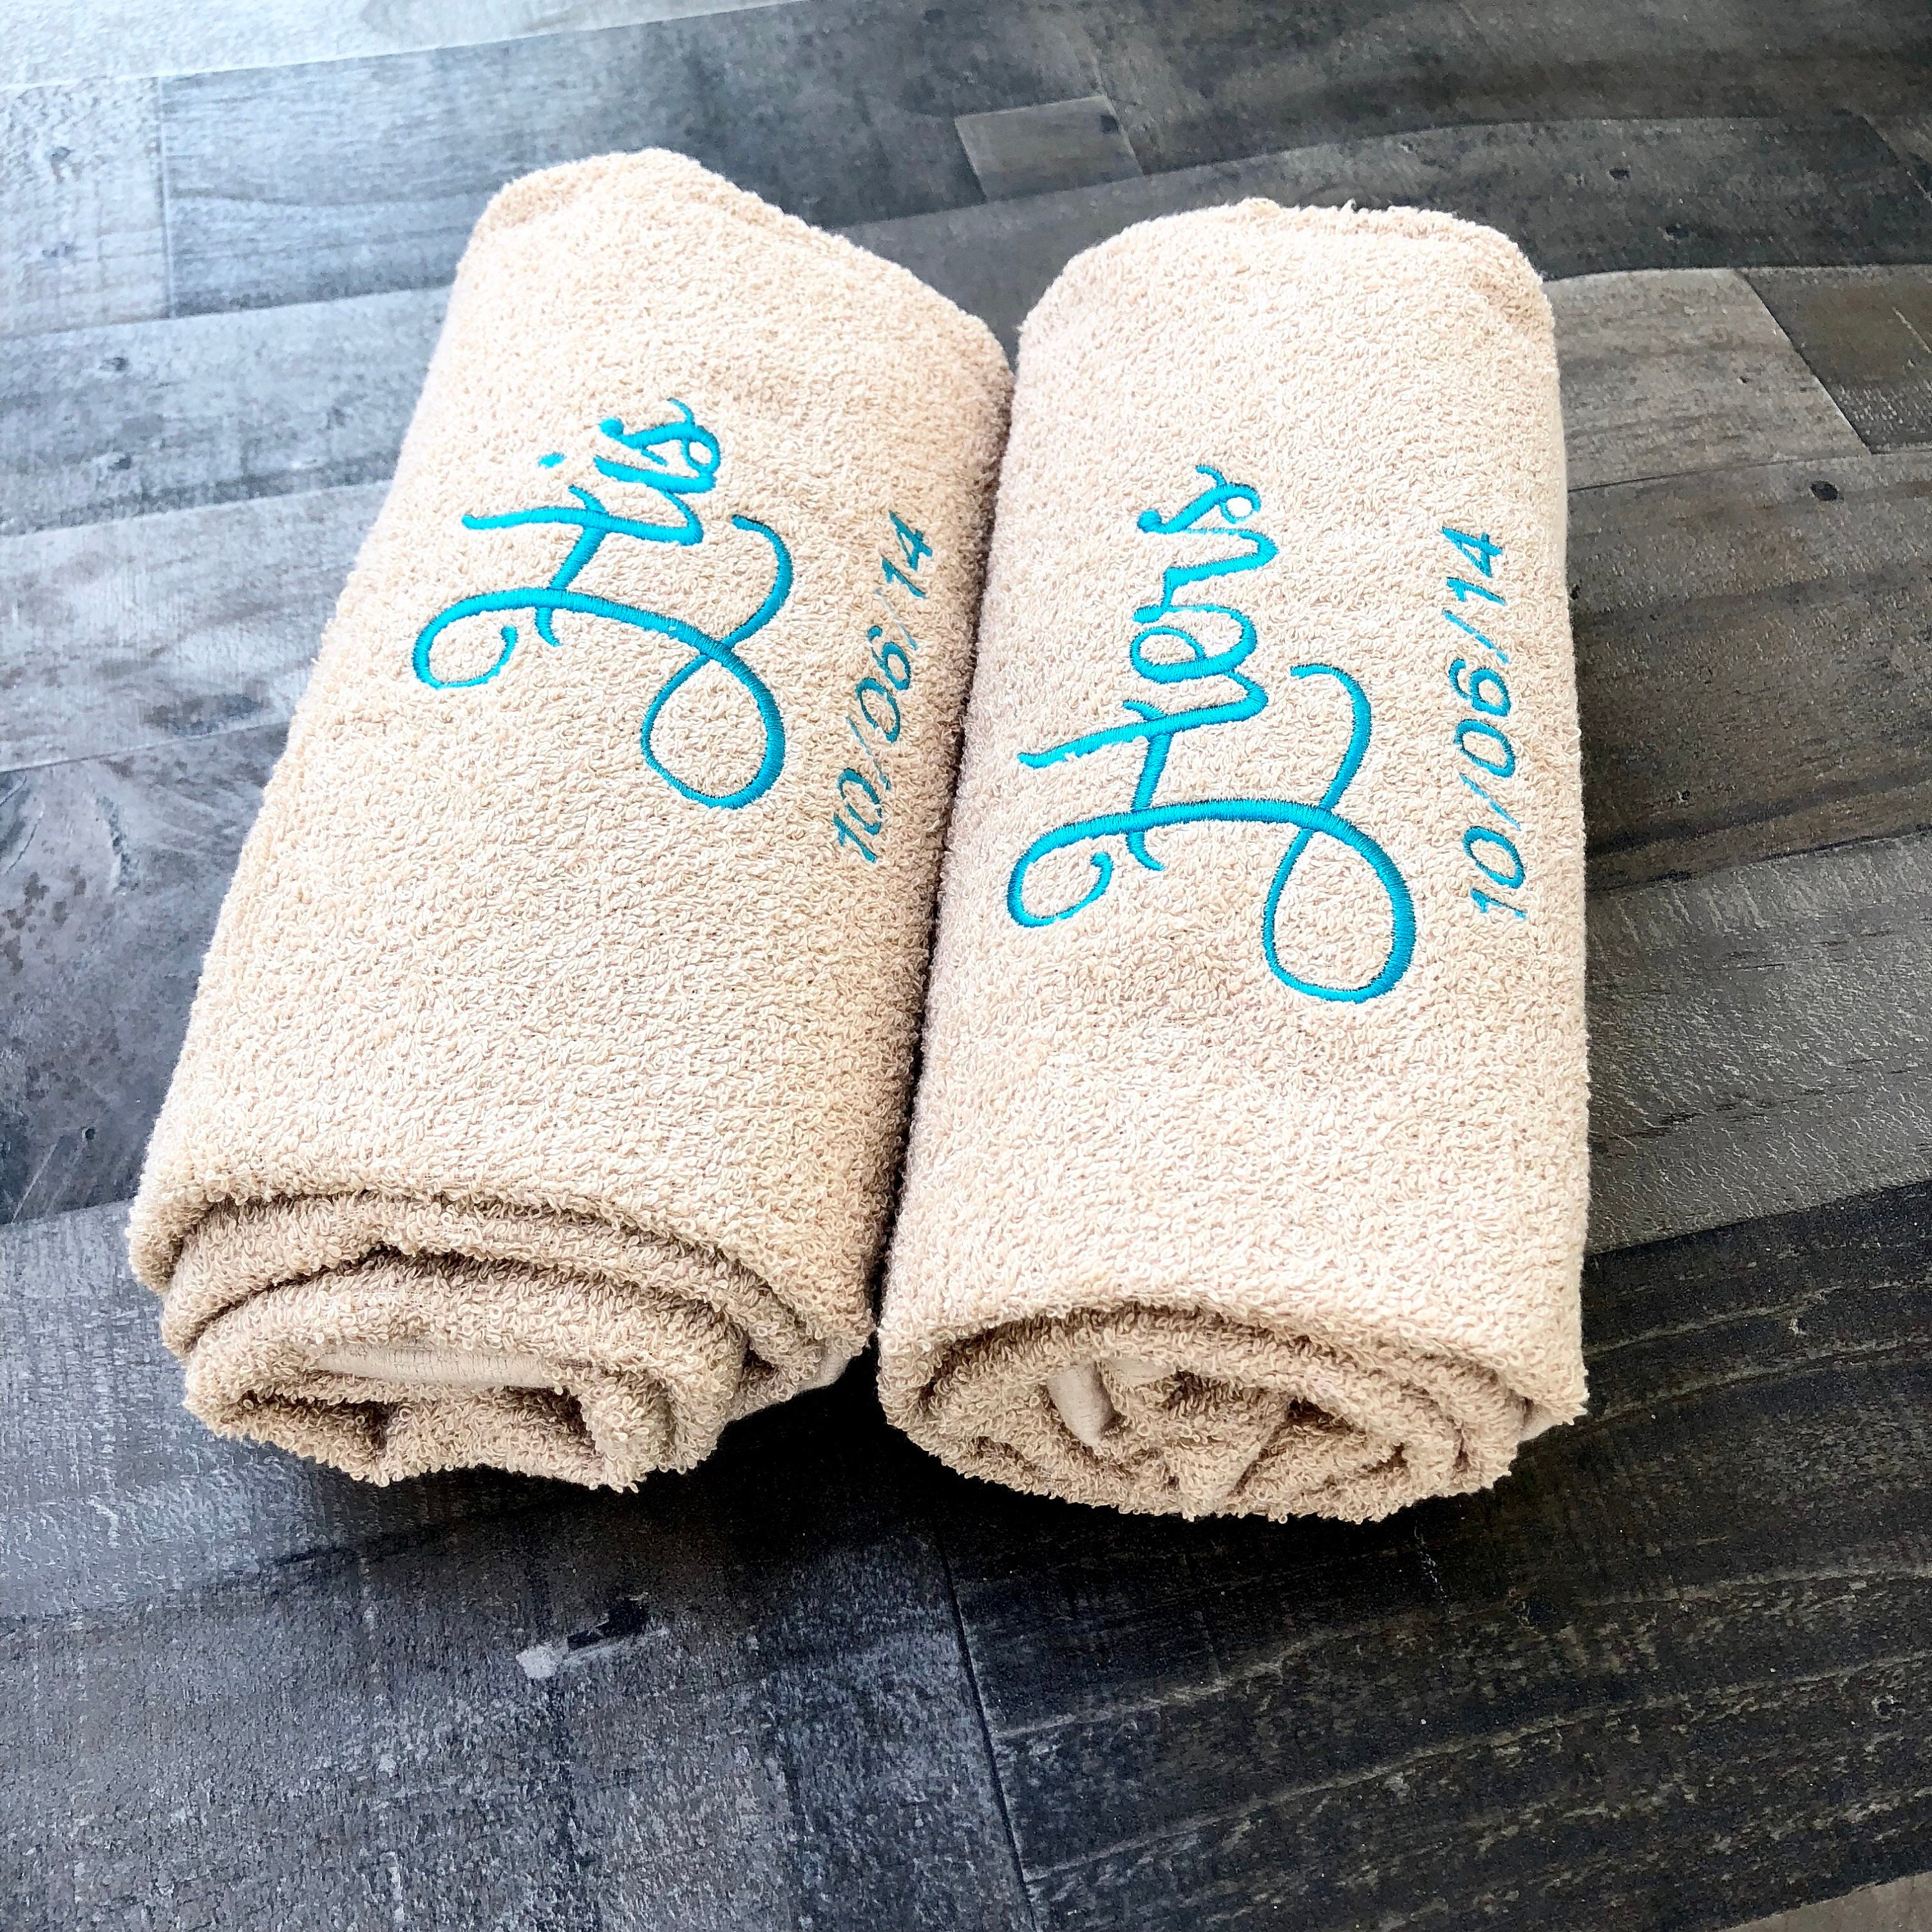 Embroidered Towels For Wedding Gift: His And Hers Embroidered Bath Towels With Wedding Date